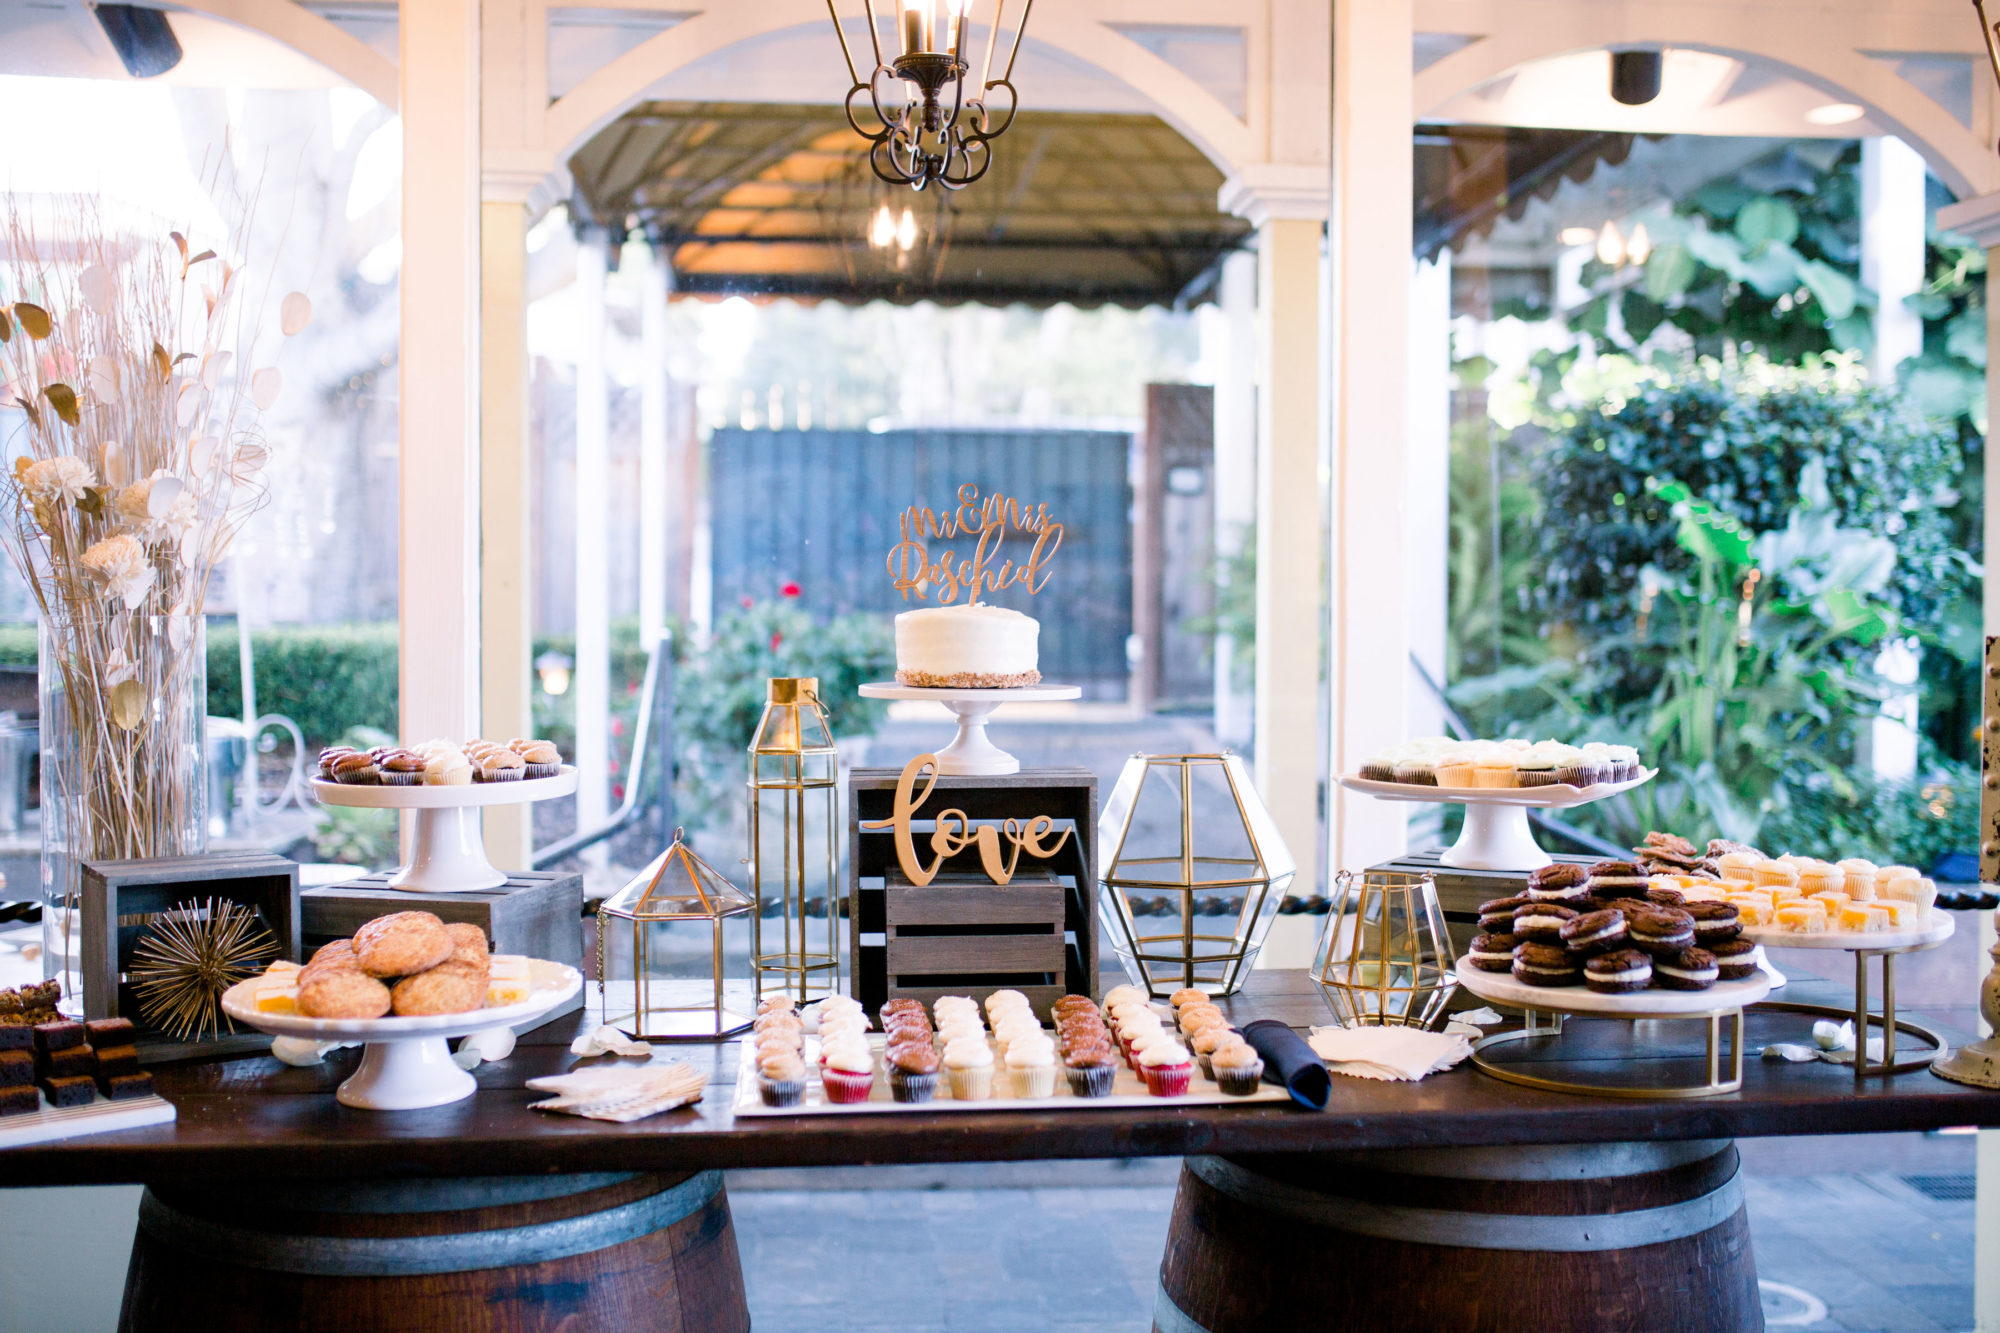 Dessert Table Set-up in Carriage House